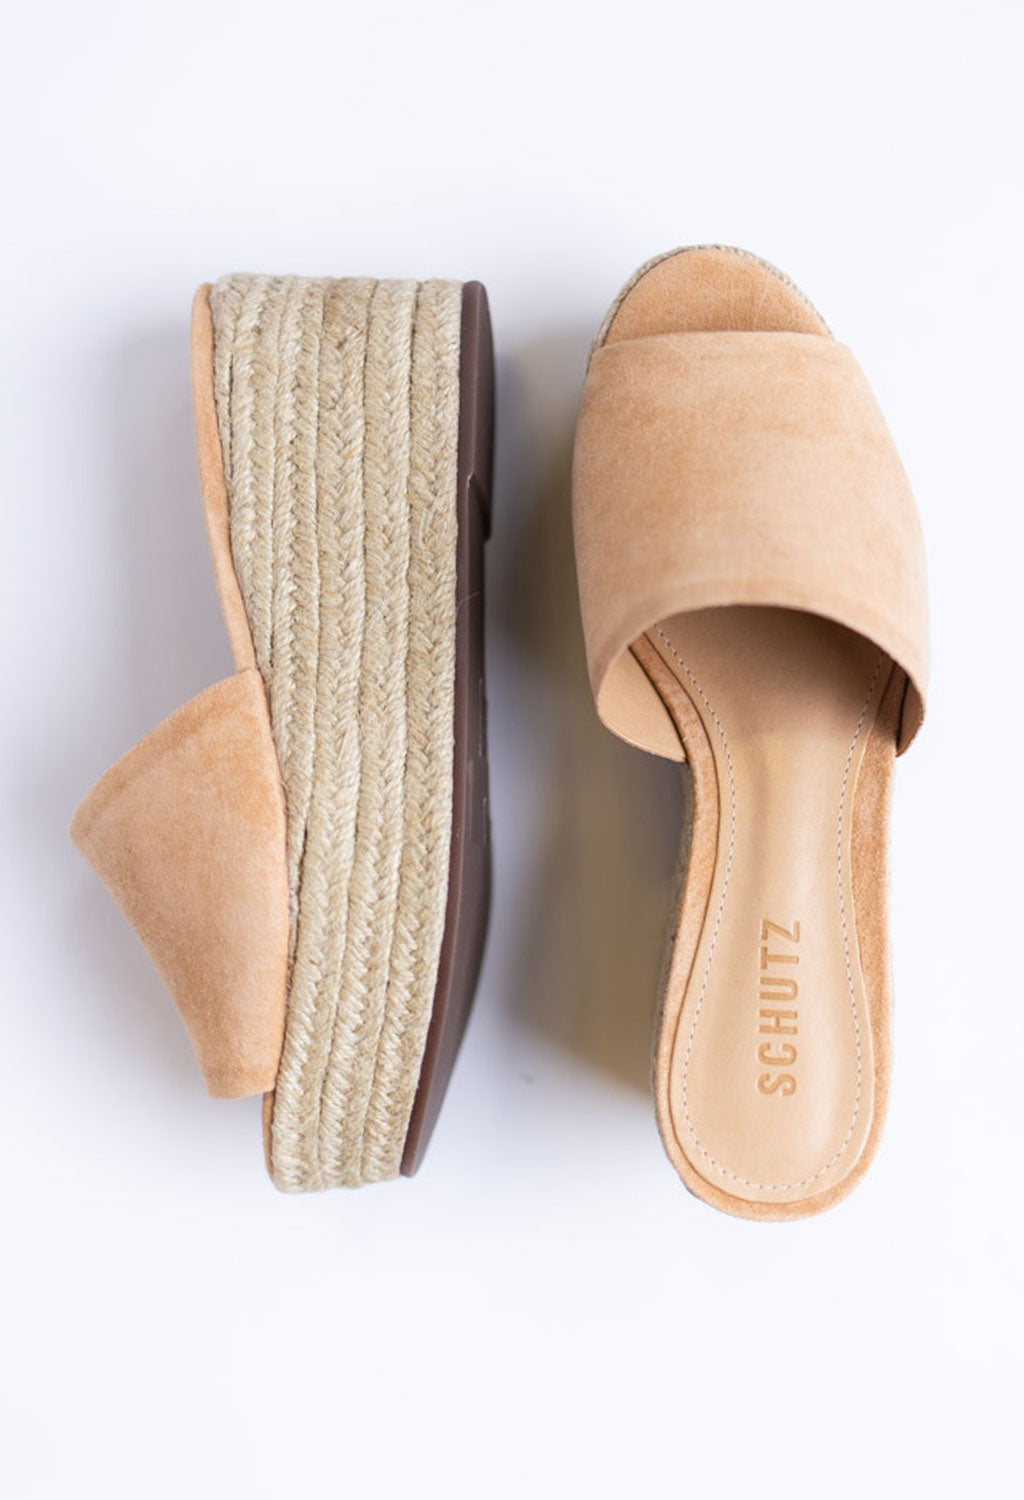 Schutz Thalia Wedge Slide